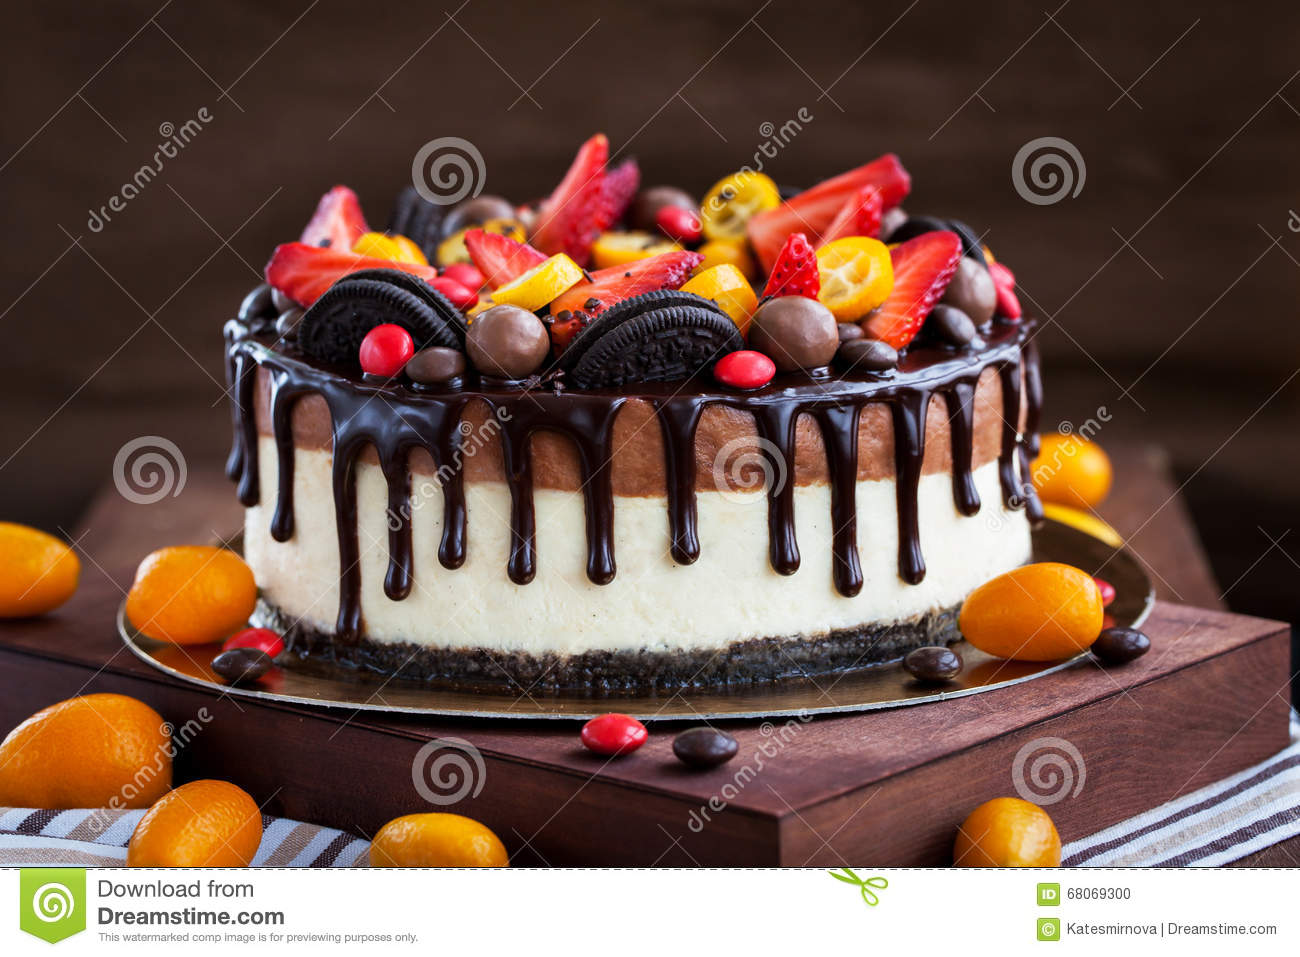 Chocolate Cheesecake Decorated With Fresh Fruits Stock